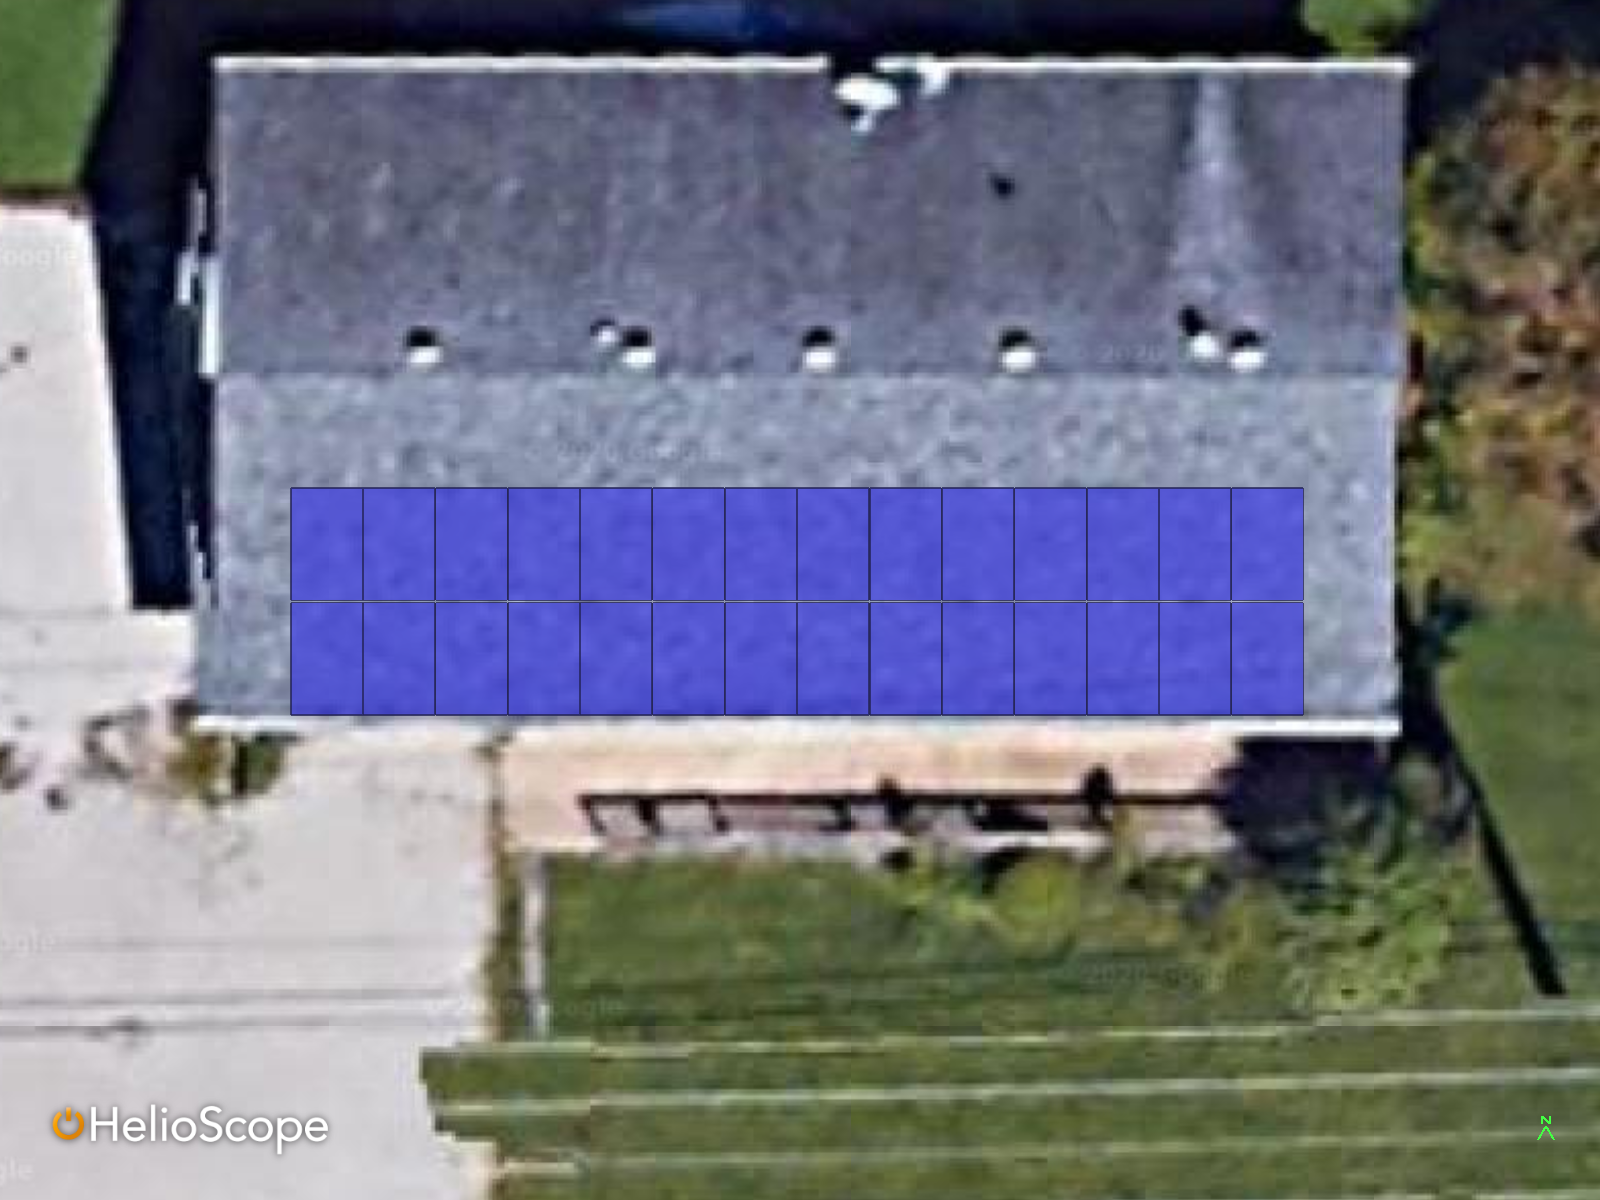 How many solar panels do I need for the square footage of my home?